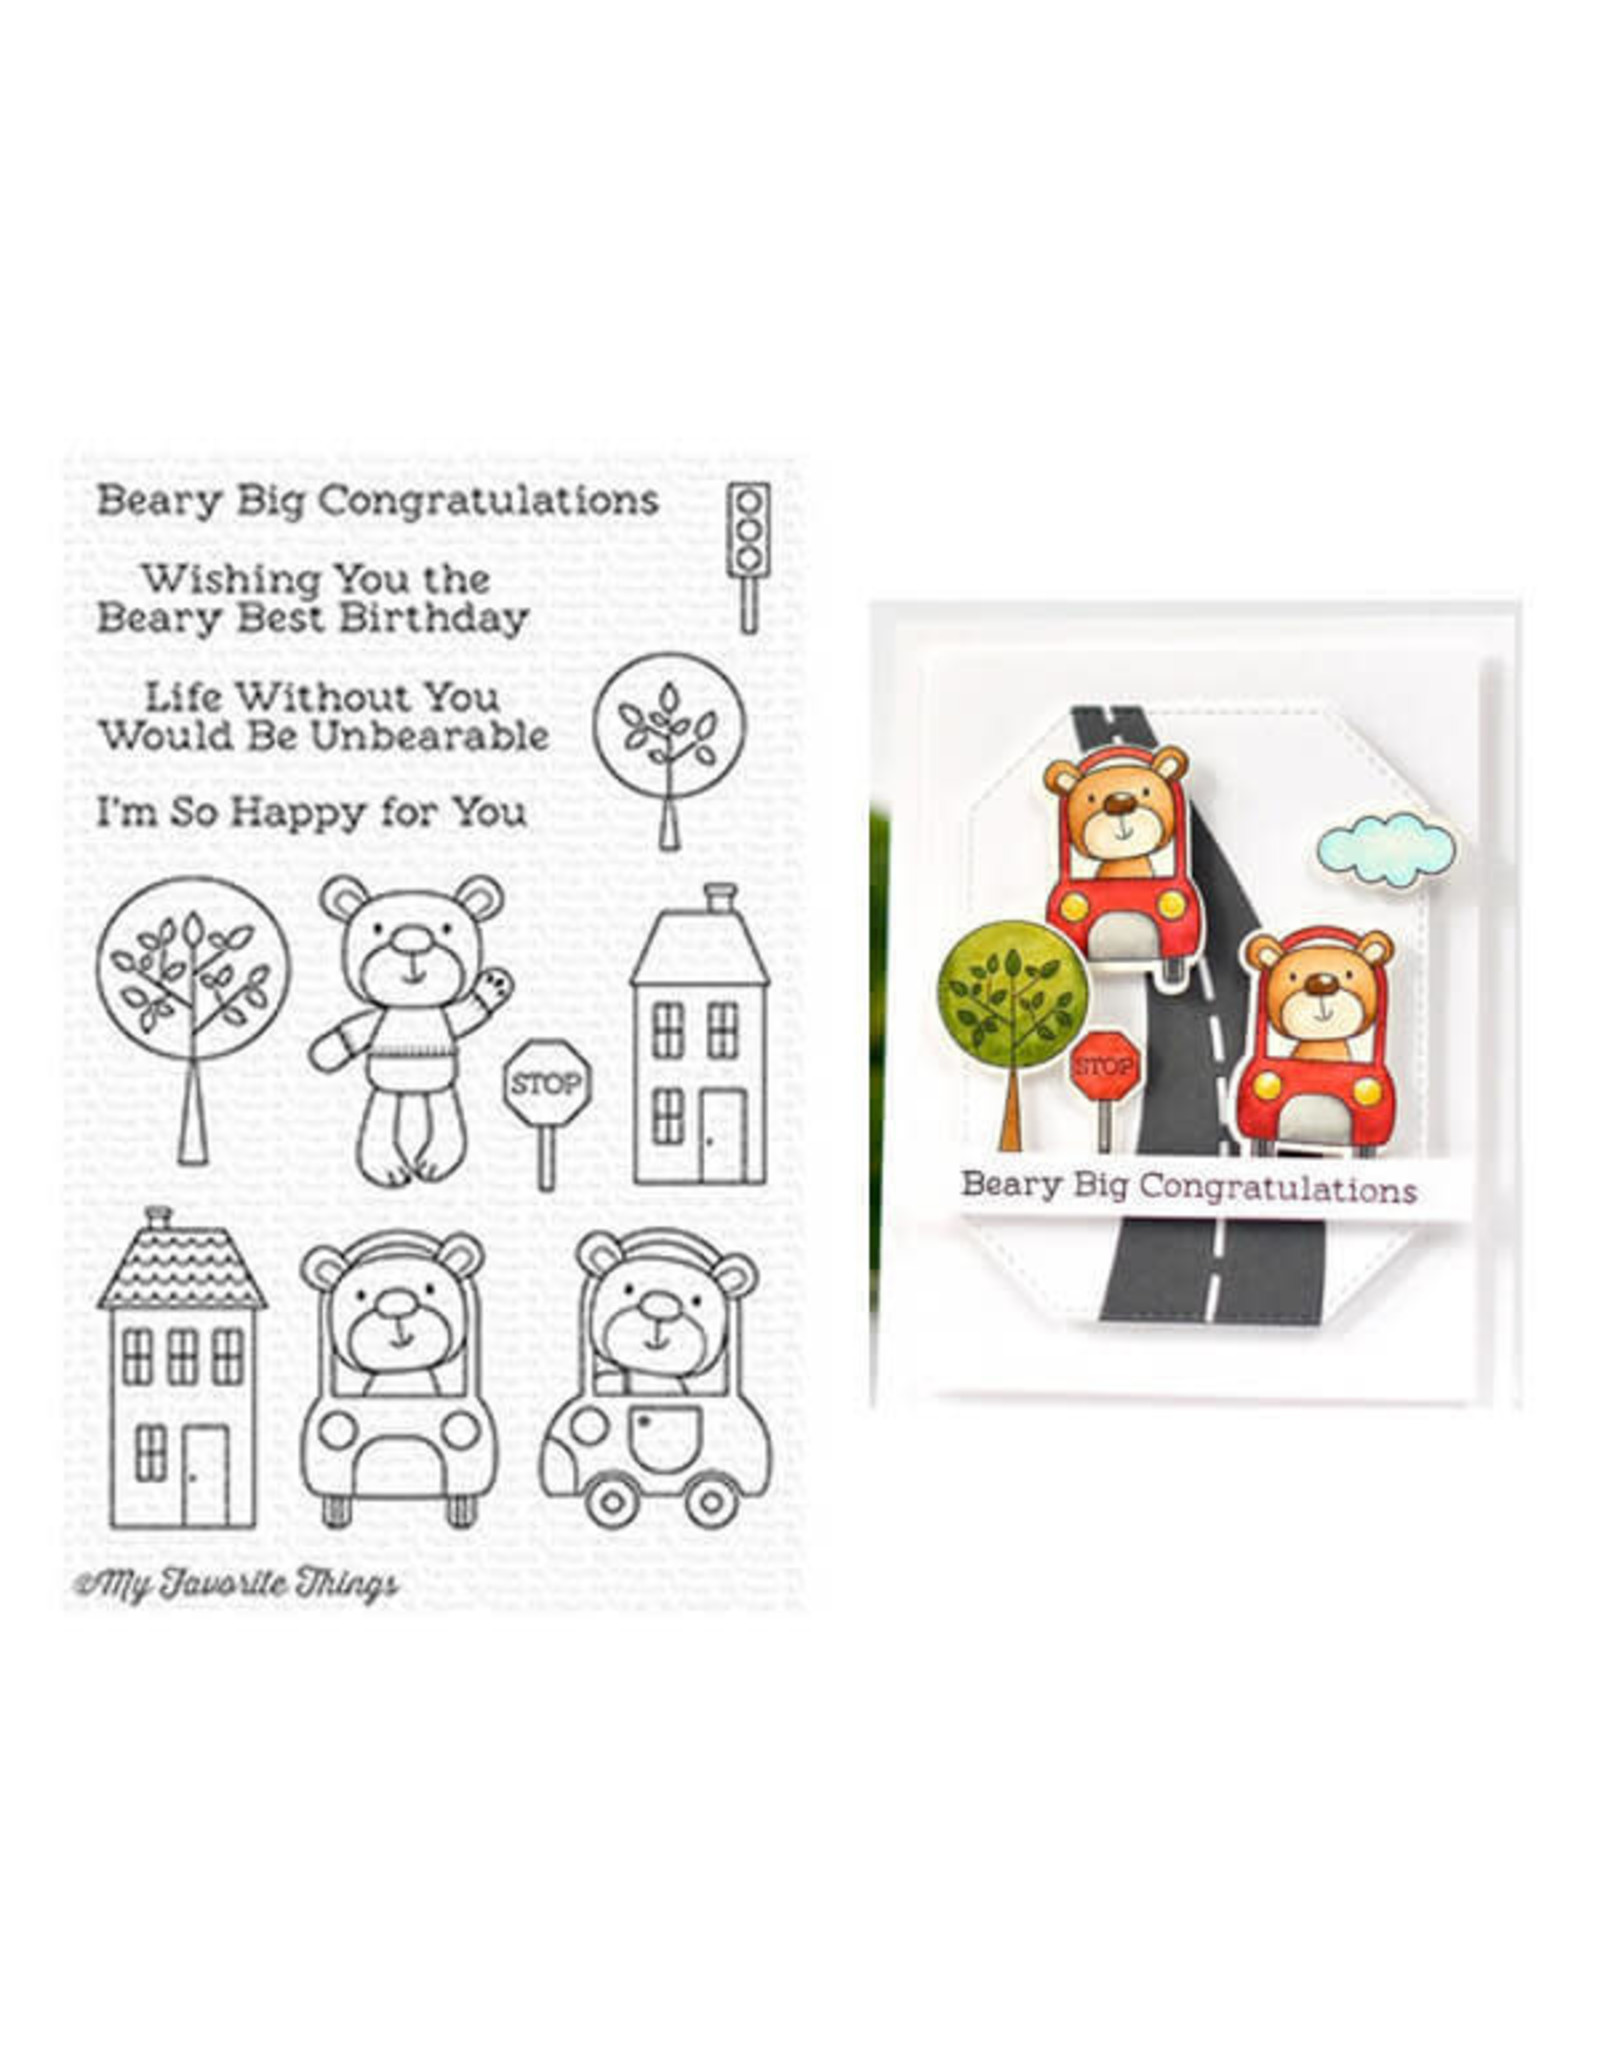 My Favorite Things Town Bear - Clear Stamp Set (RETIRED) (25%)